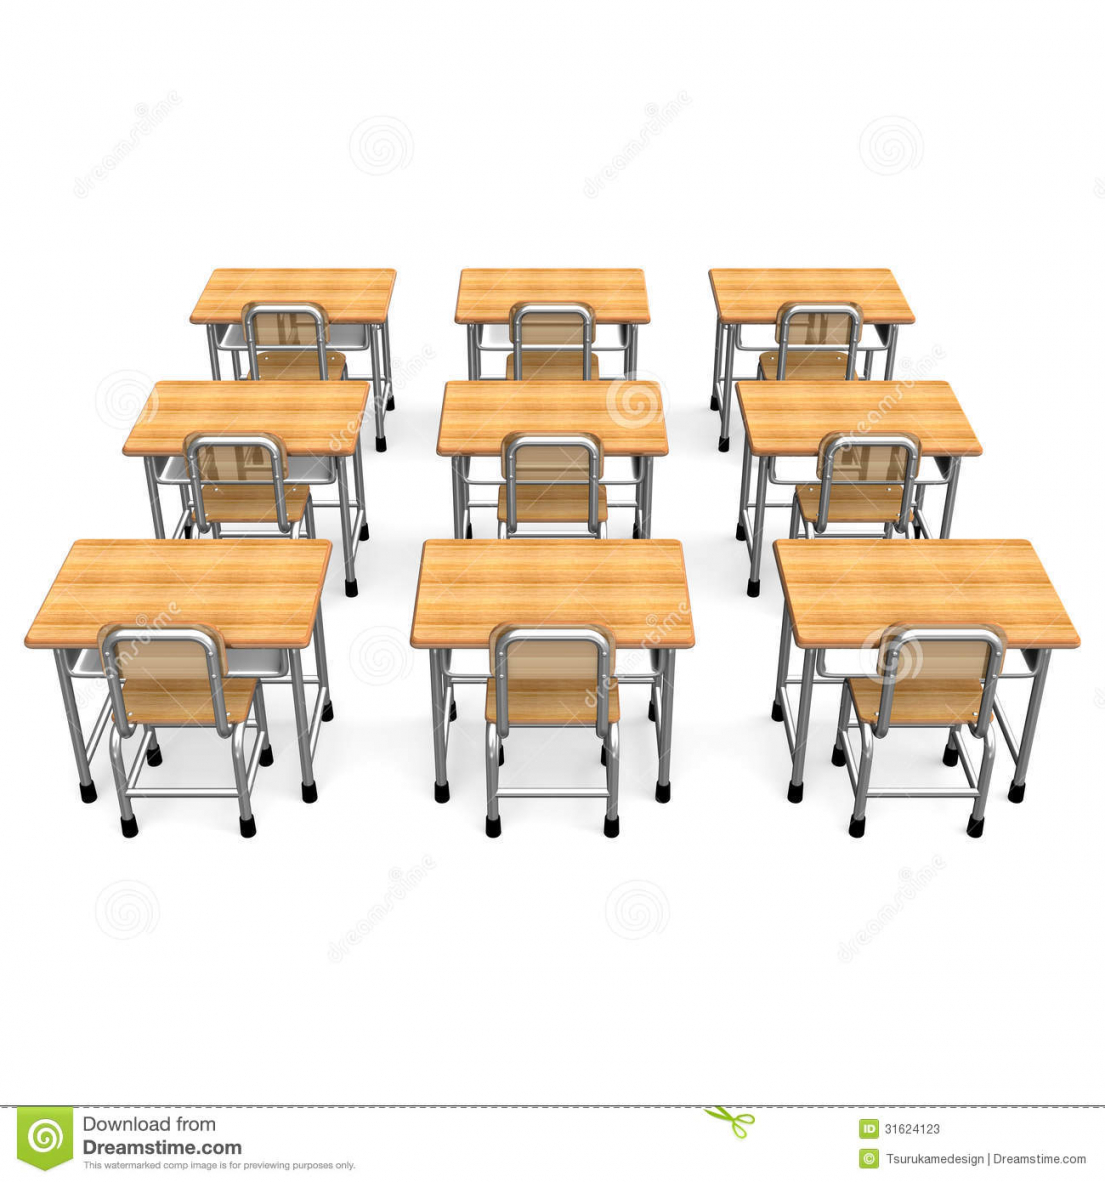 Furniture clipart school table  Chair School Back Desk